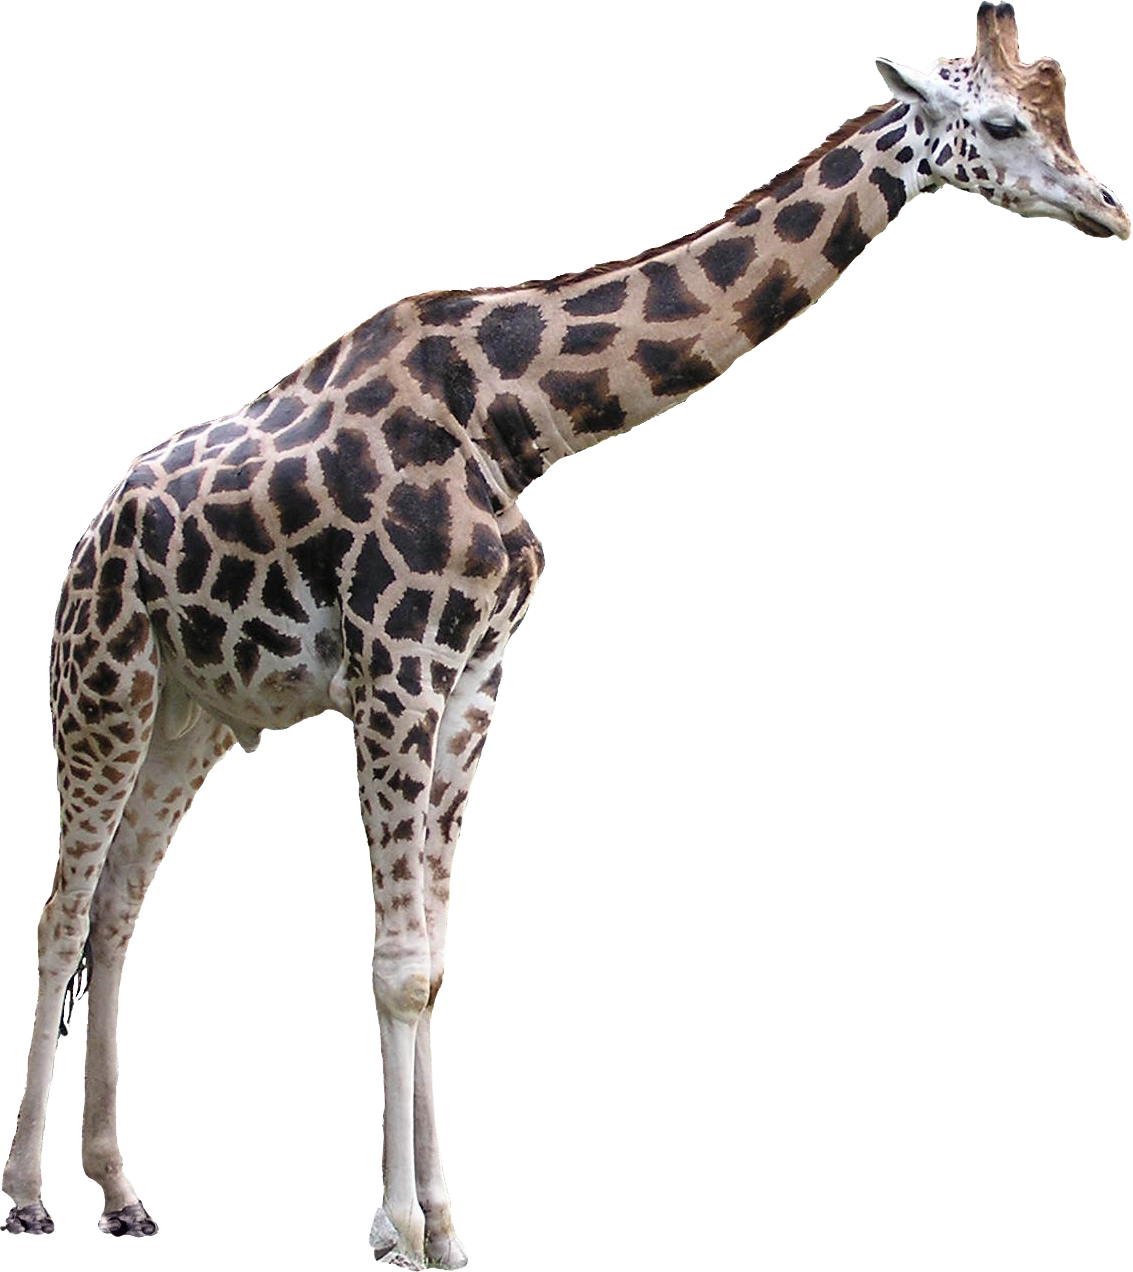 Giraffe png images. Free download